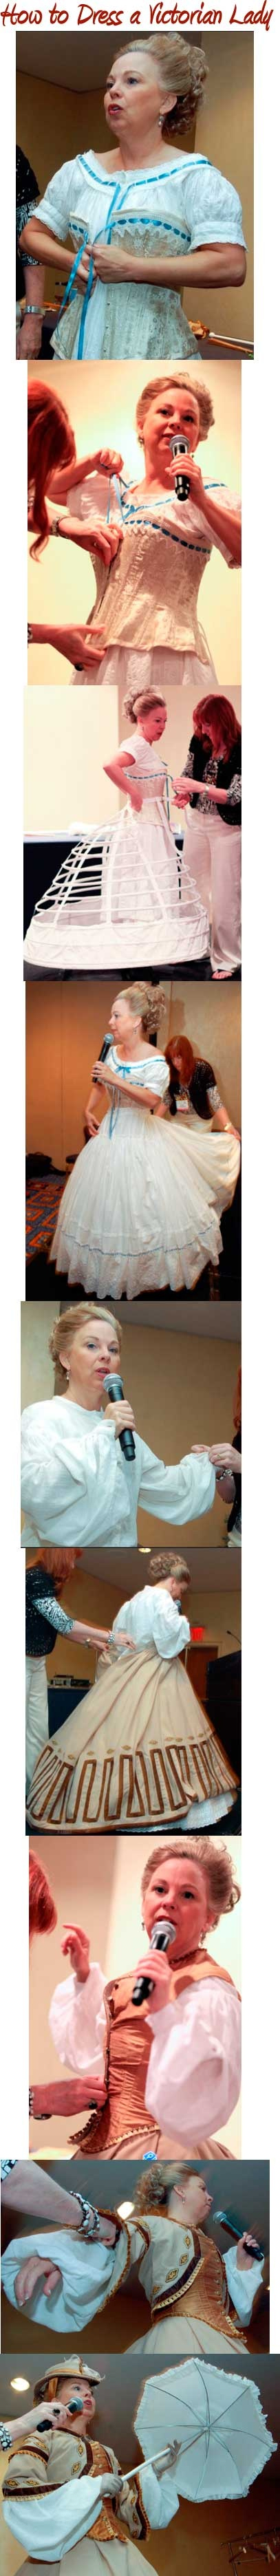 Deanne Gist, an author of romance novels, shows how a lady of the Victorian era got dressed. For the story, see http://online.wsj.com/article/SB10001424052702304911104576443871615544338.html#project%3DSLIDESHOW08%26s%3DSB10001424052702304203304576446283031106882%26articleTabs%3Darticle